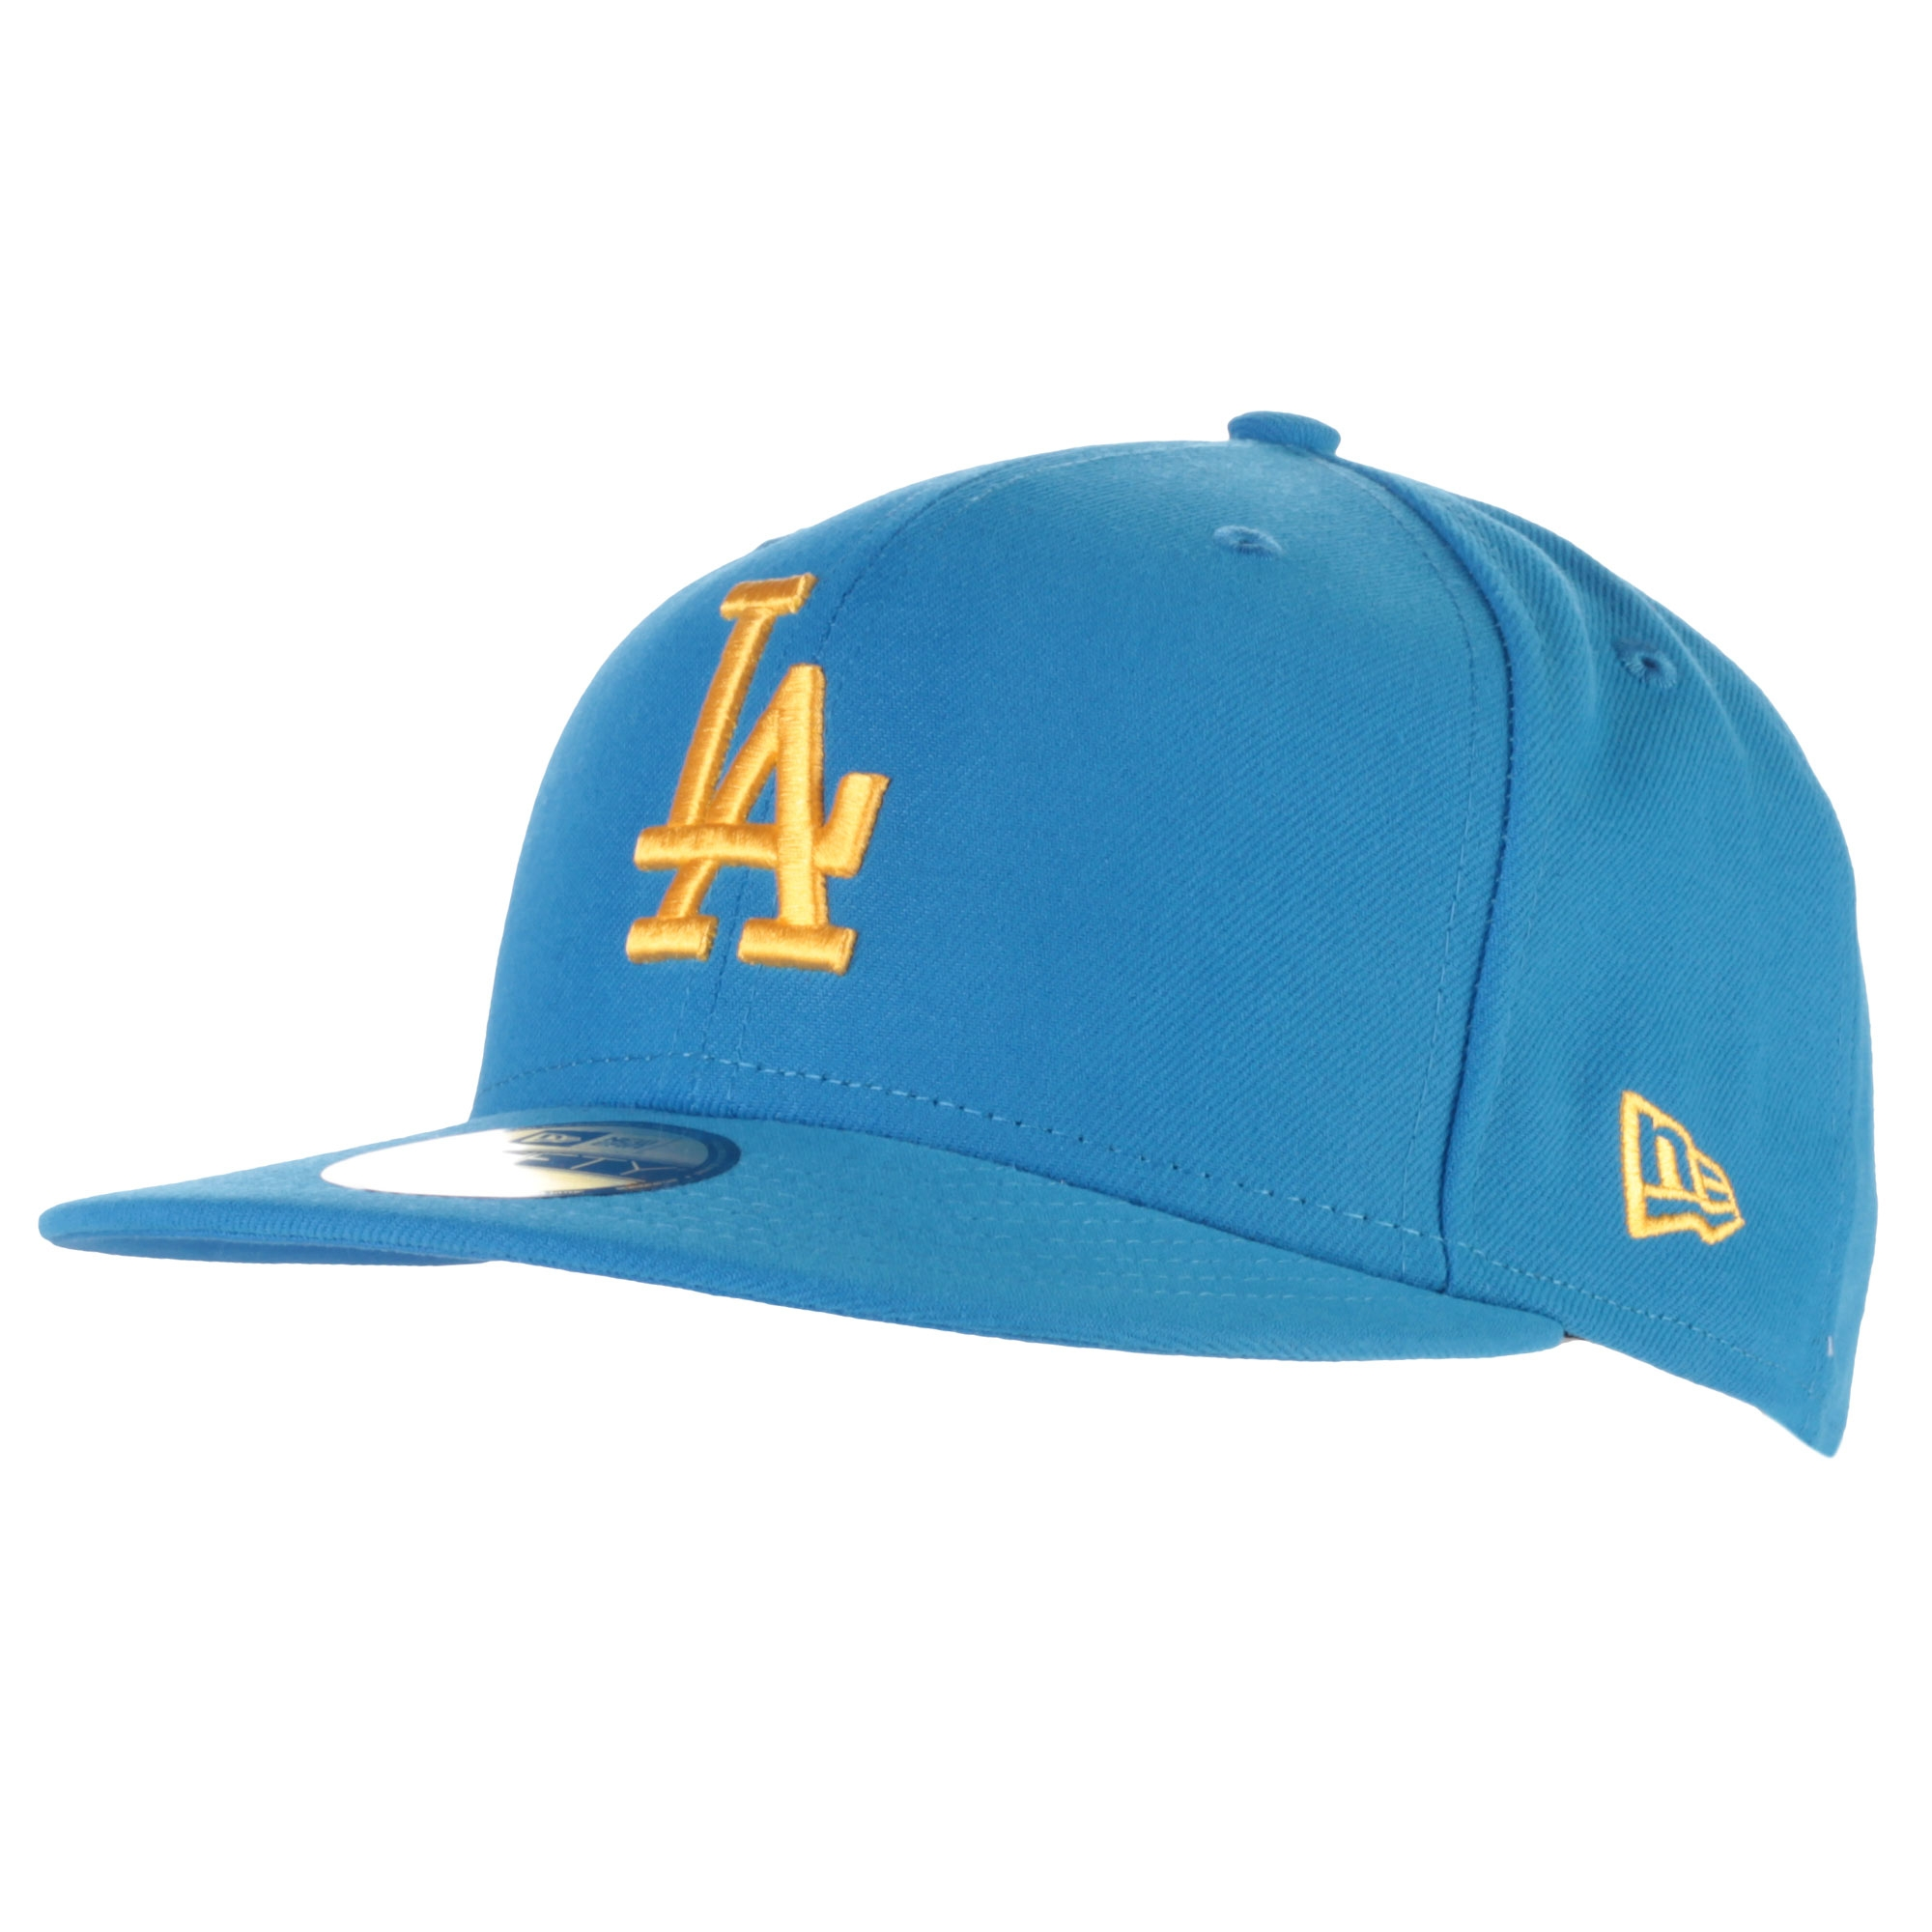 Kšiltovka New Era Los Angeles Dodgers 59Fifty blue/gold